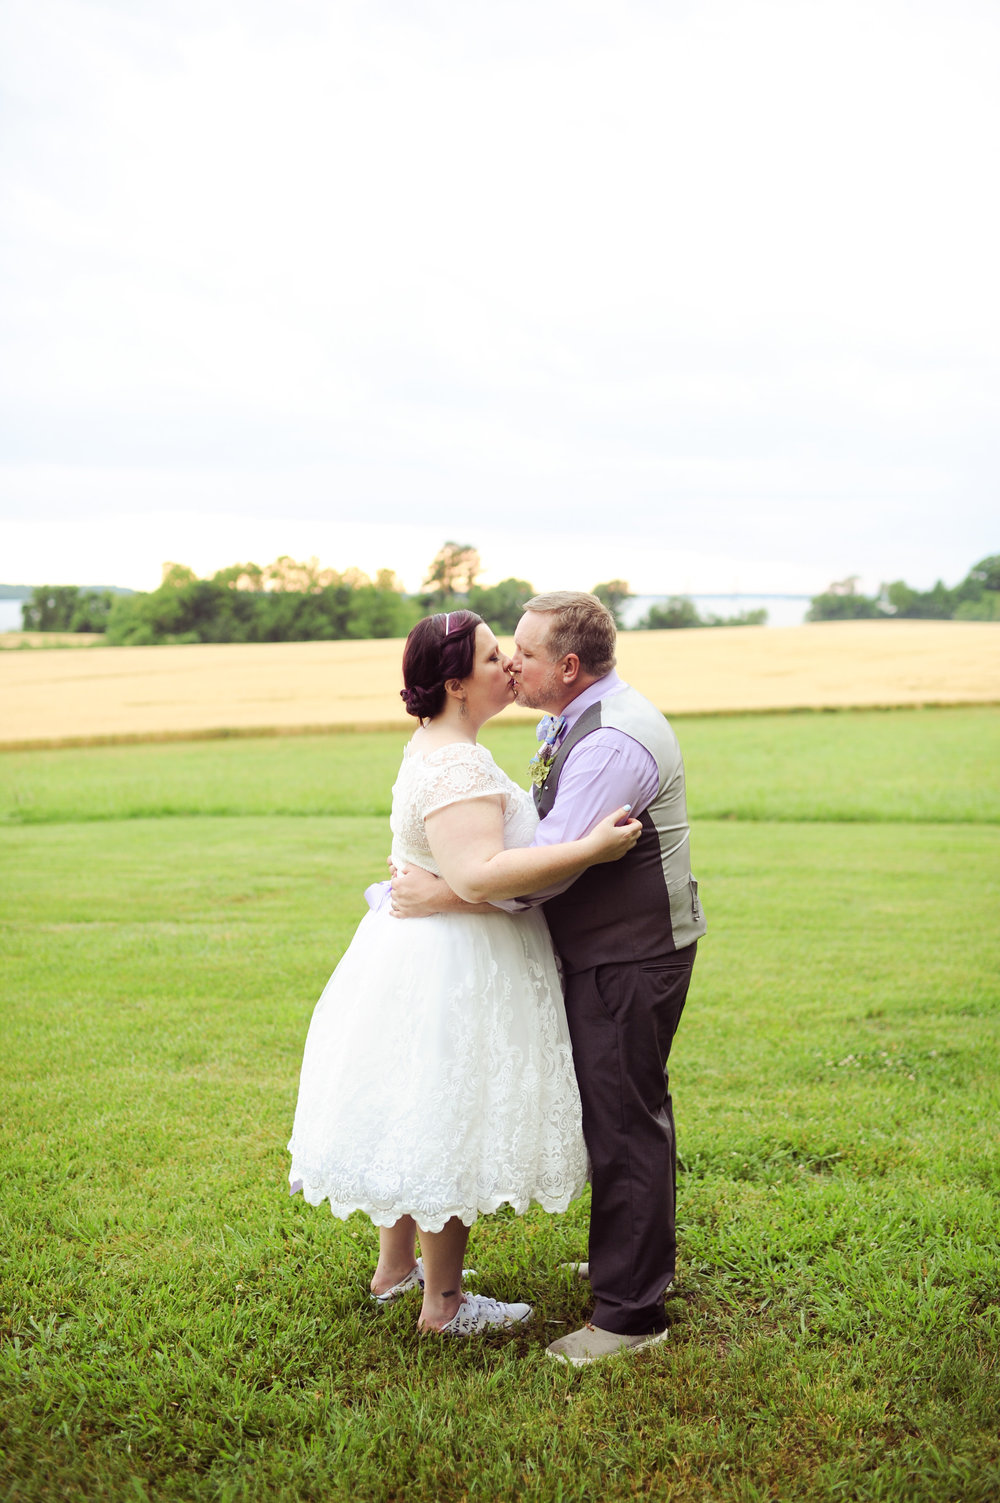 KlineWedding05.27.17-611.jpg